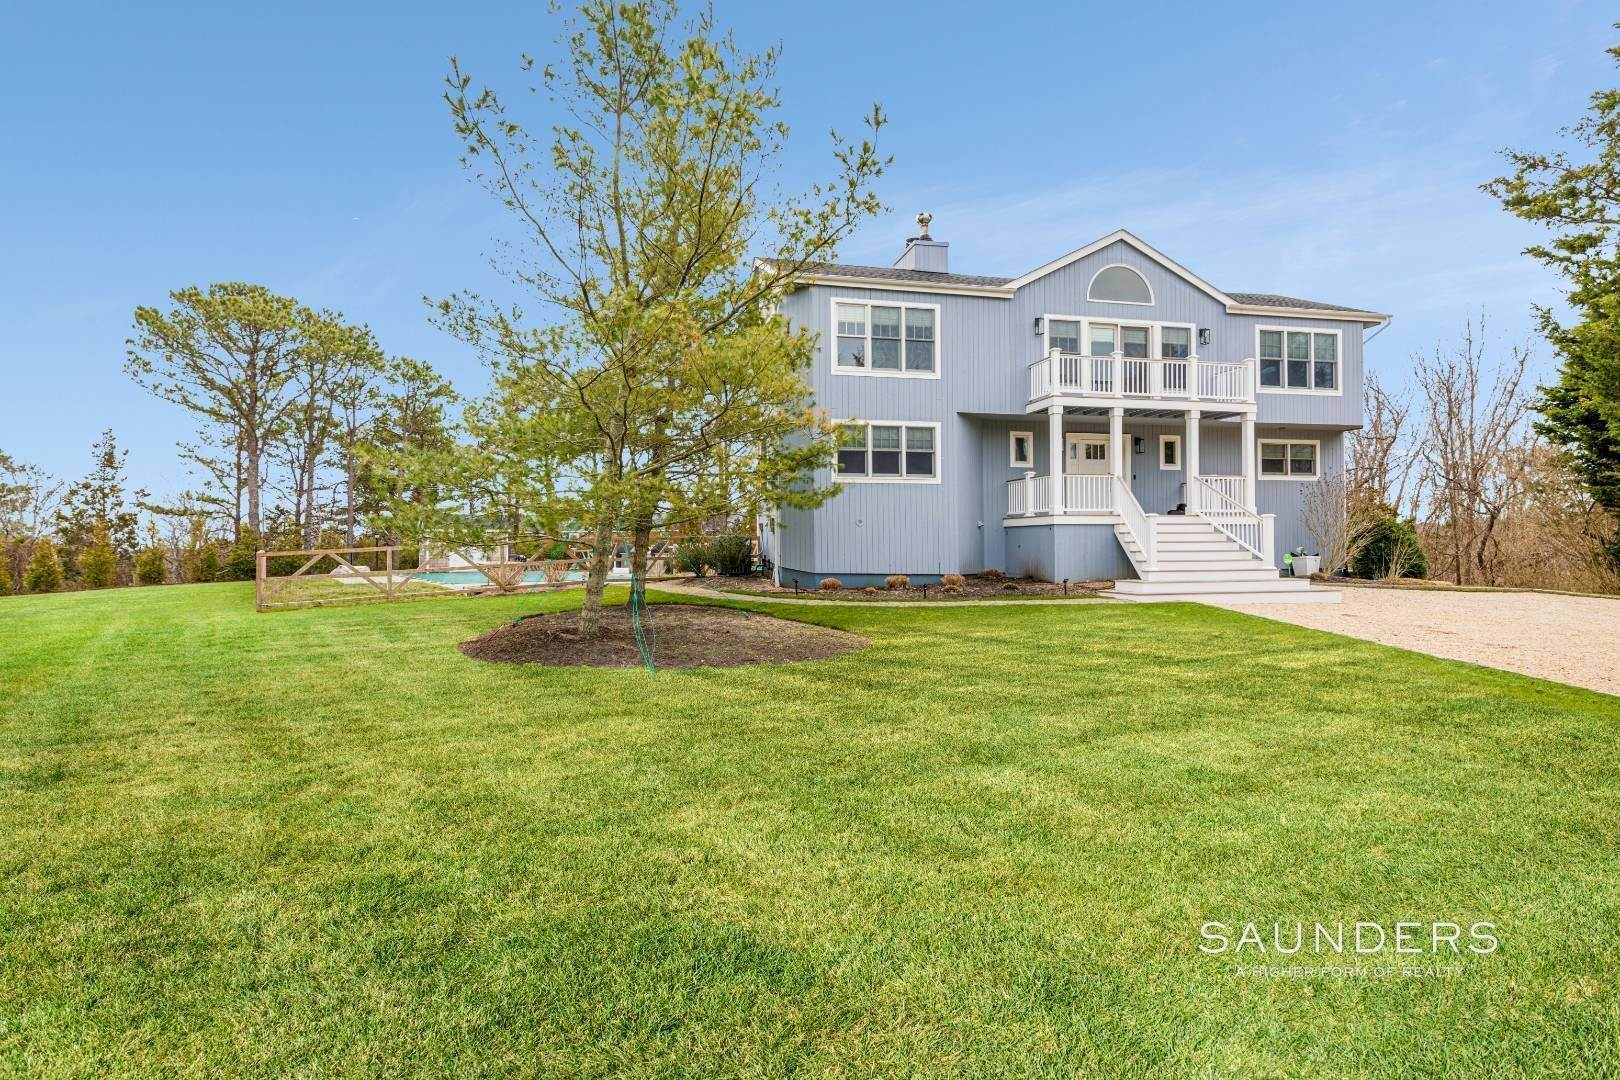 2. Single Family Homes for Sale at Beautiful Southampton Renovation With Pool And Outdoor Kitchen 80 Blackwatch Court, Southampton, Southampton Town, NY 11968